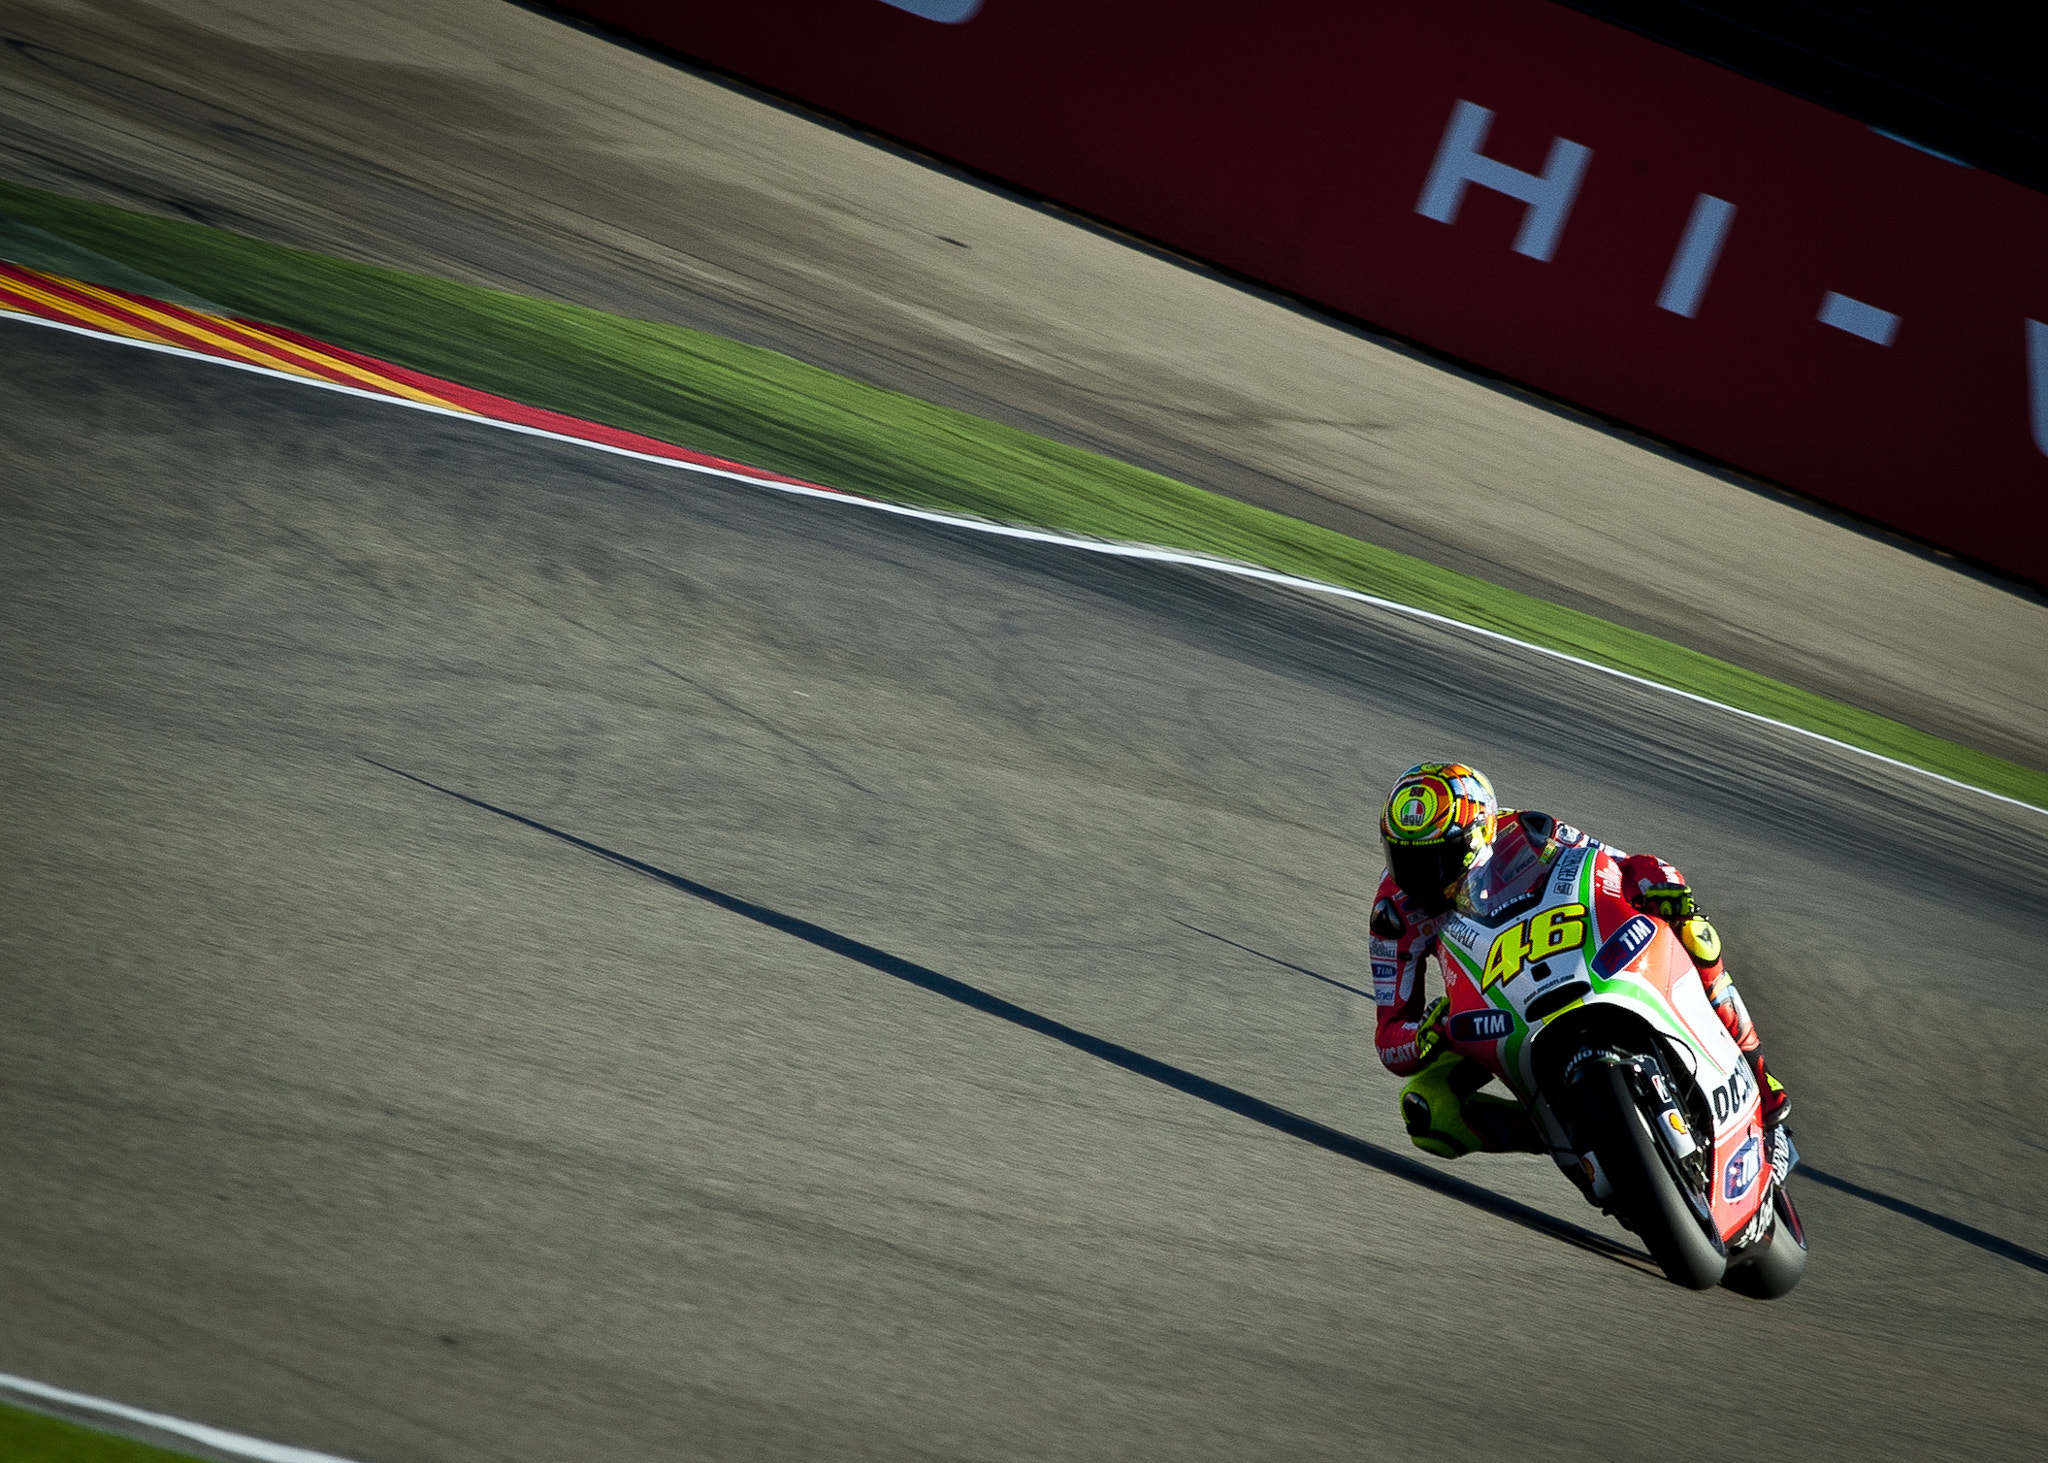 Photograph Valentino Rossi by Alejandro Ceresuela on 500px